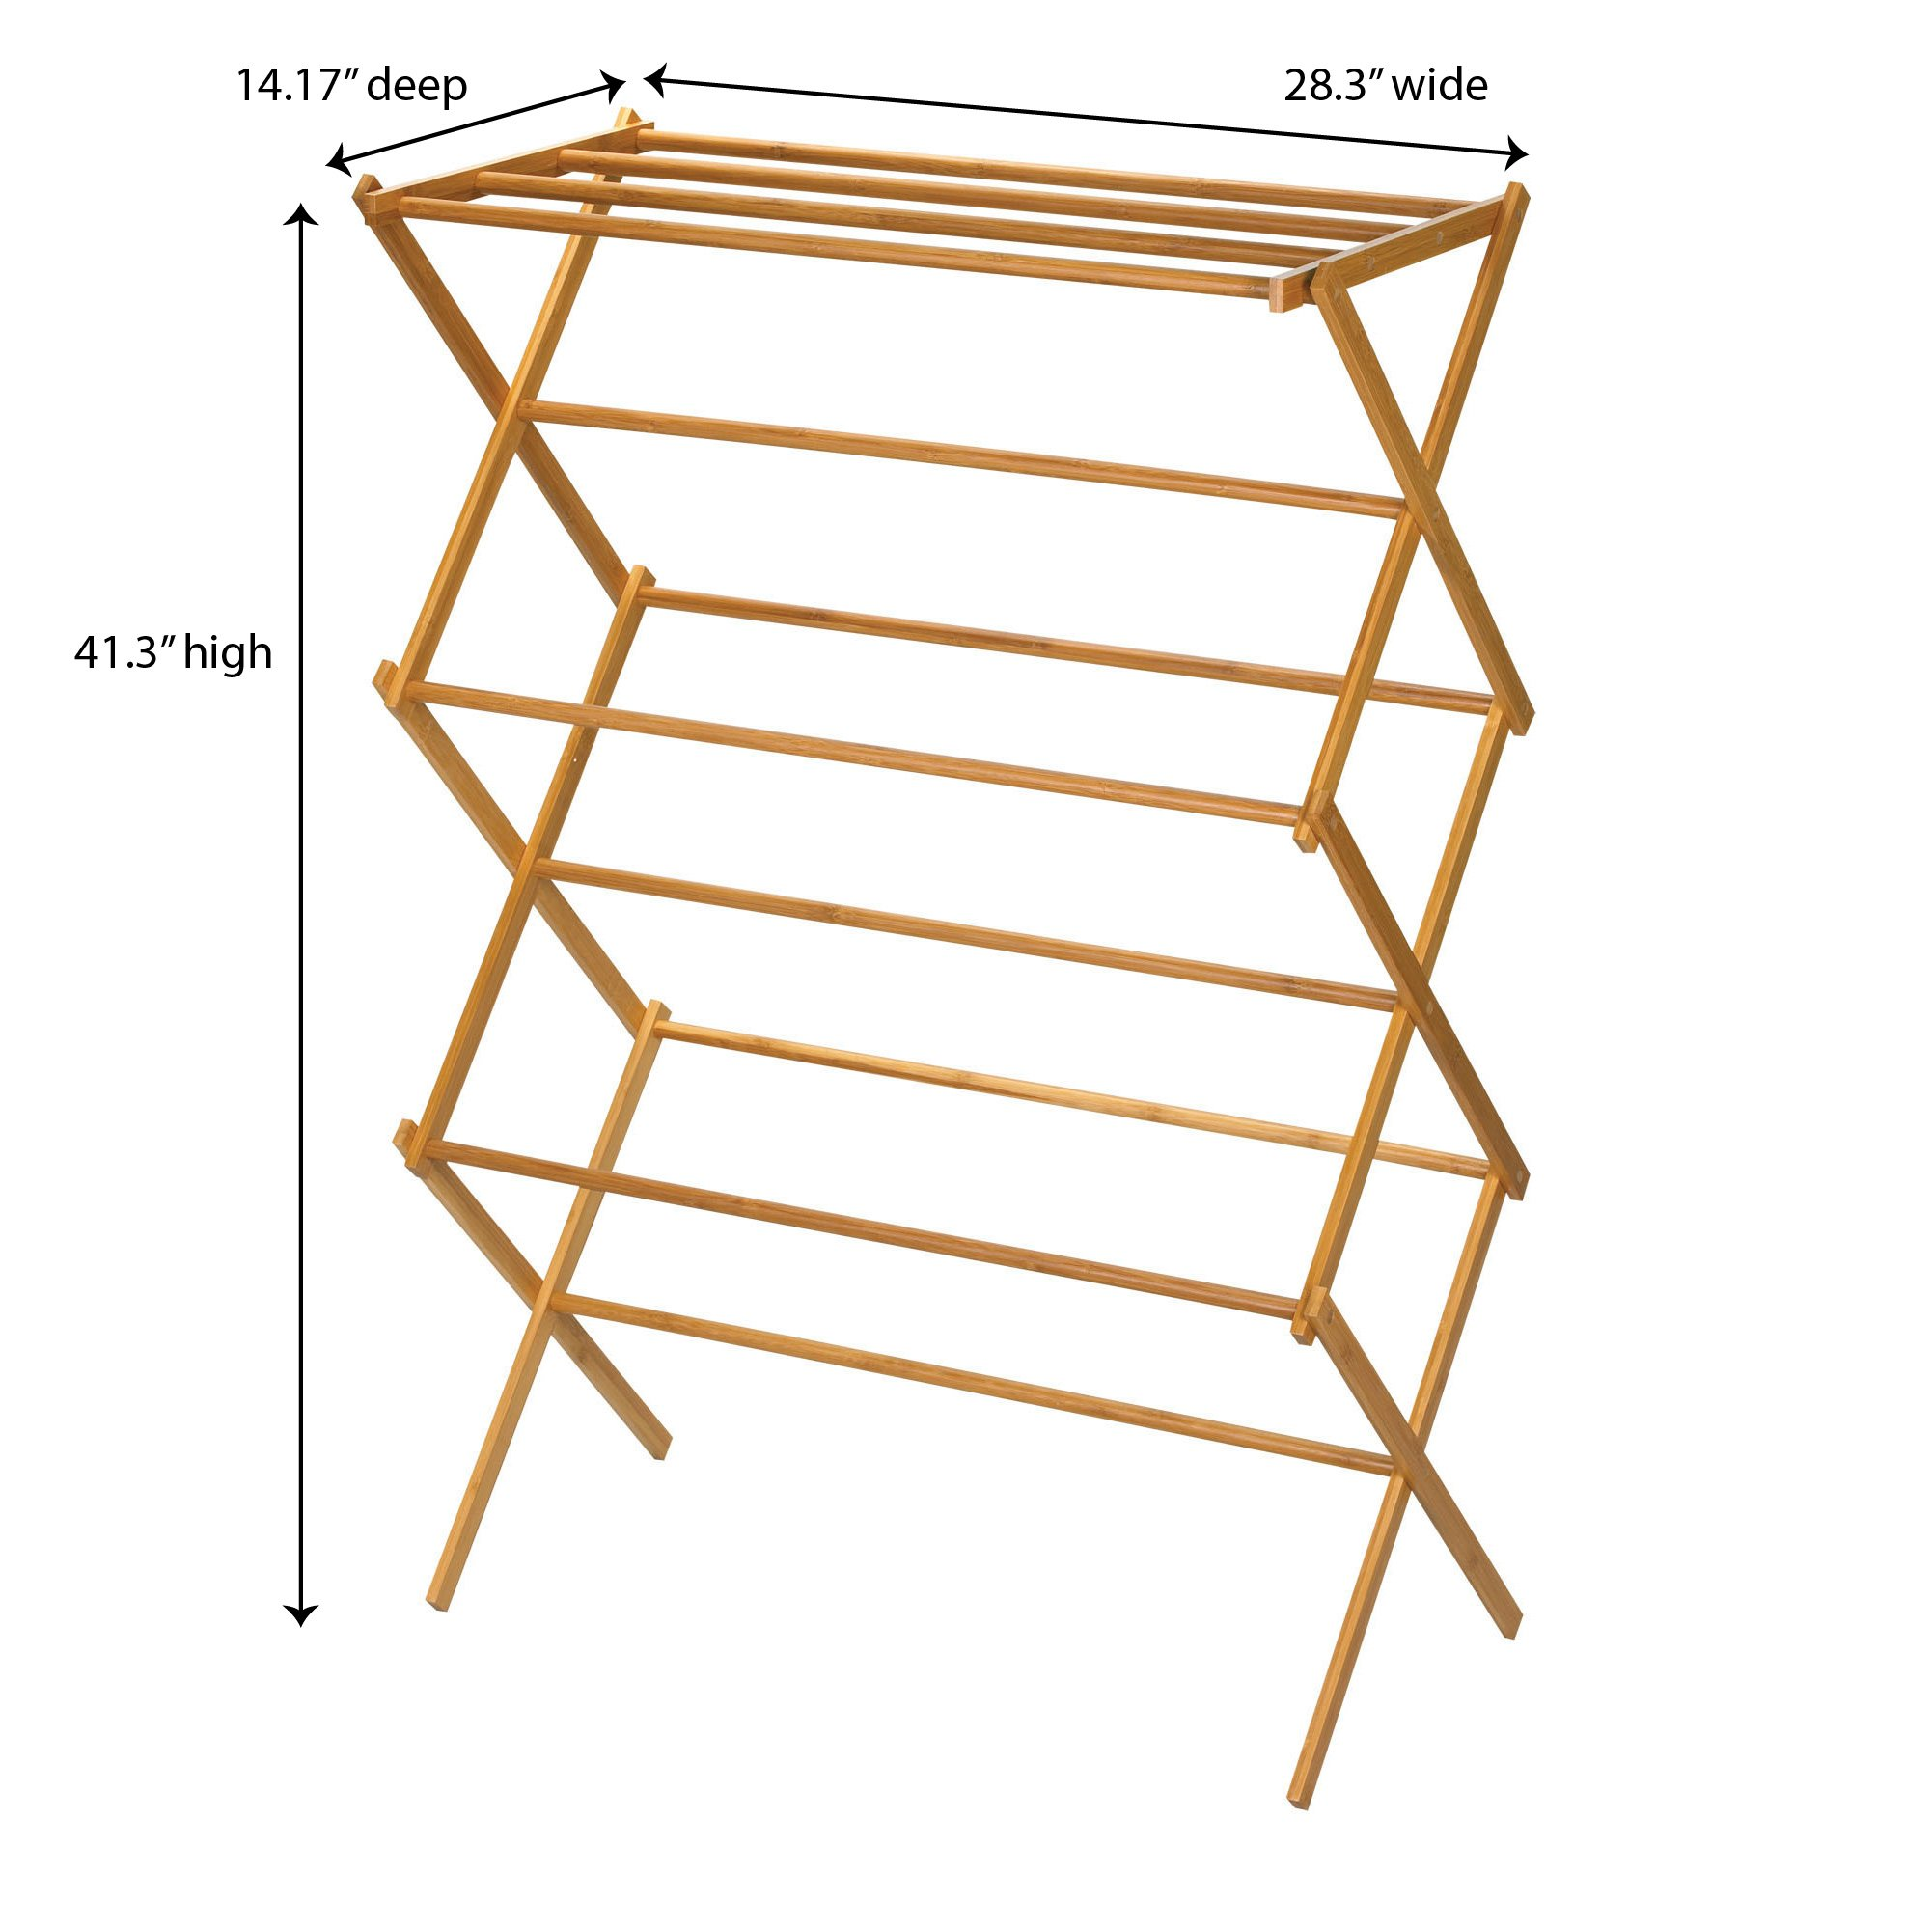 Household Essentials 6524 Tall Indoor Folding Wooden Clothes Drying Rack | Dry Laundry and Hang Clothes | Bamboo by Household Essentials (Image #6)